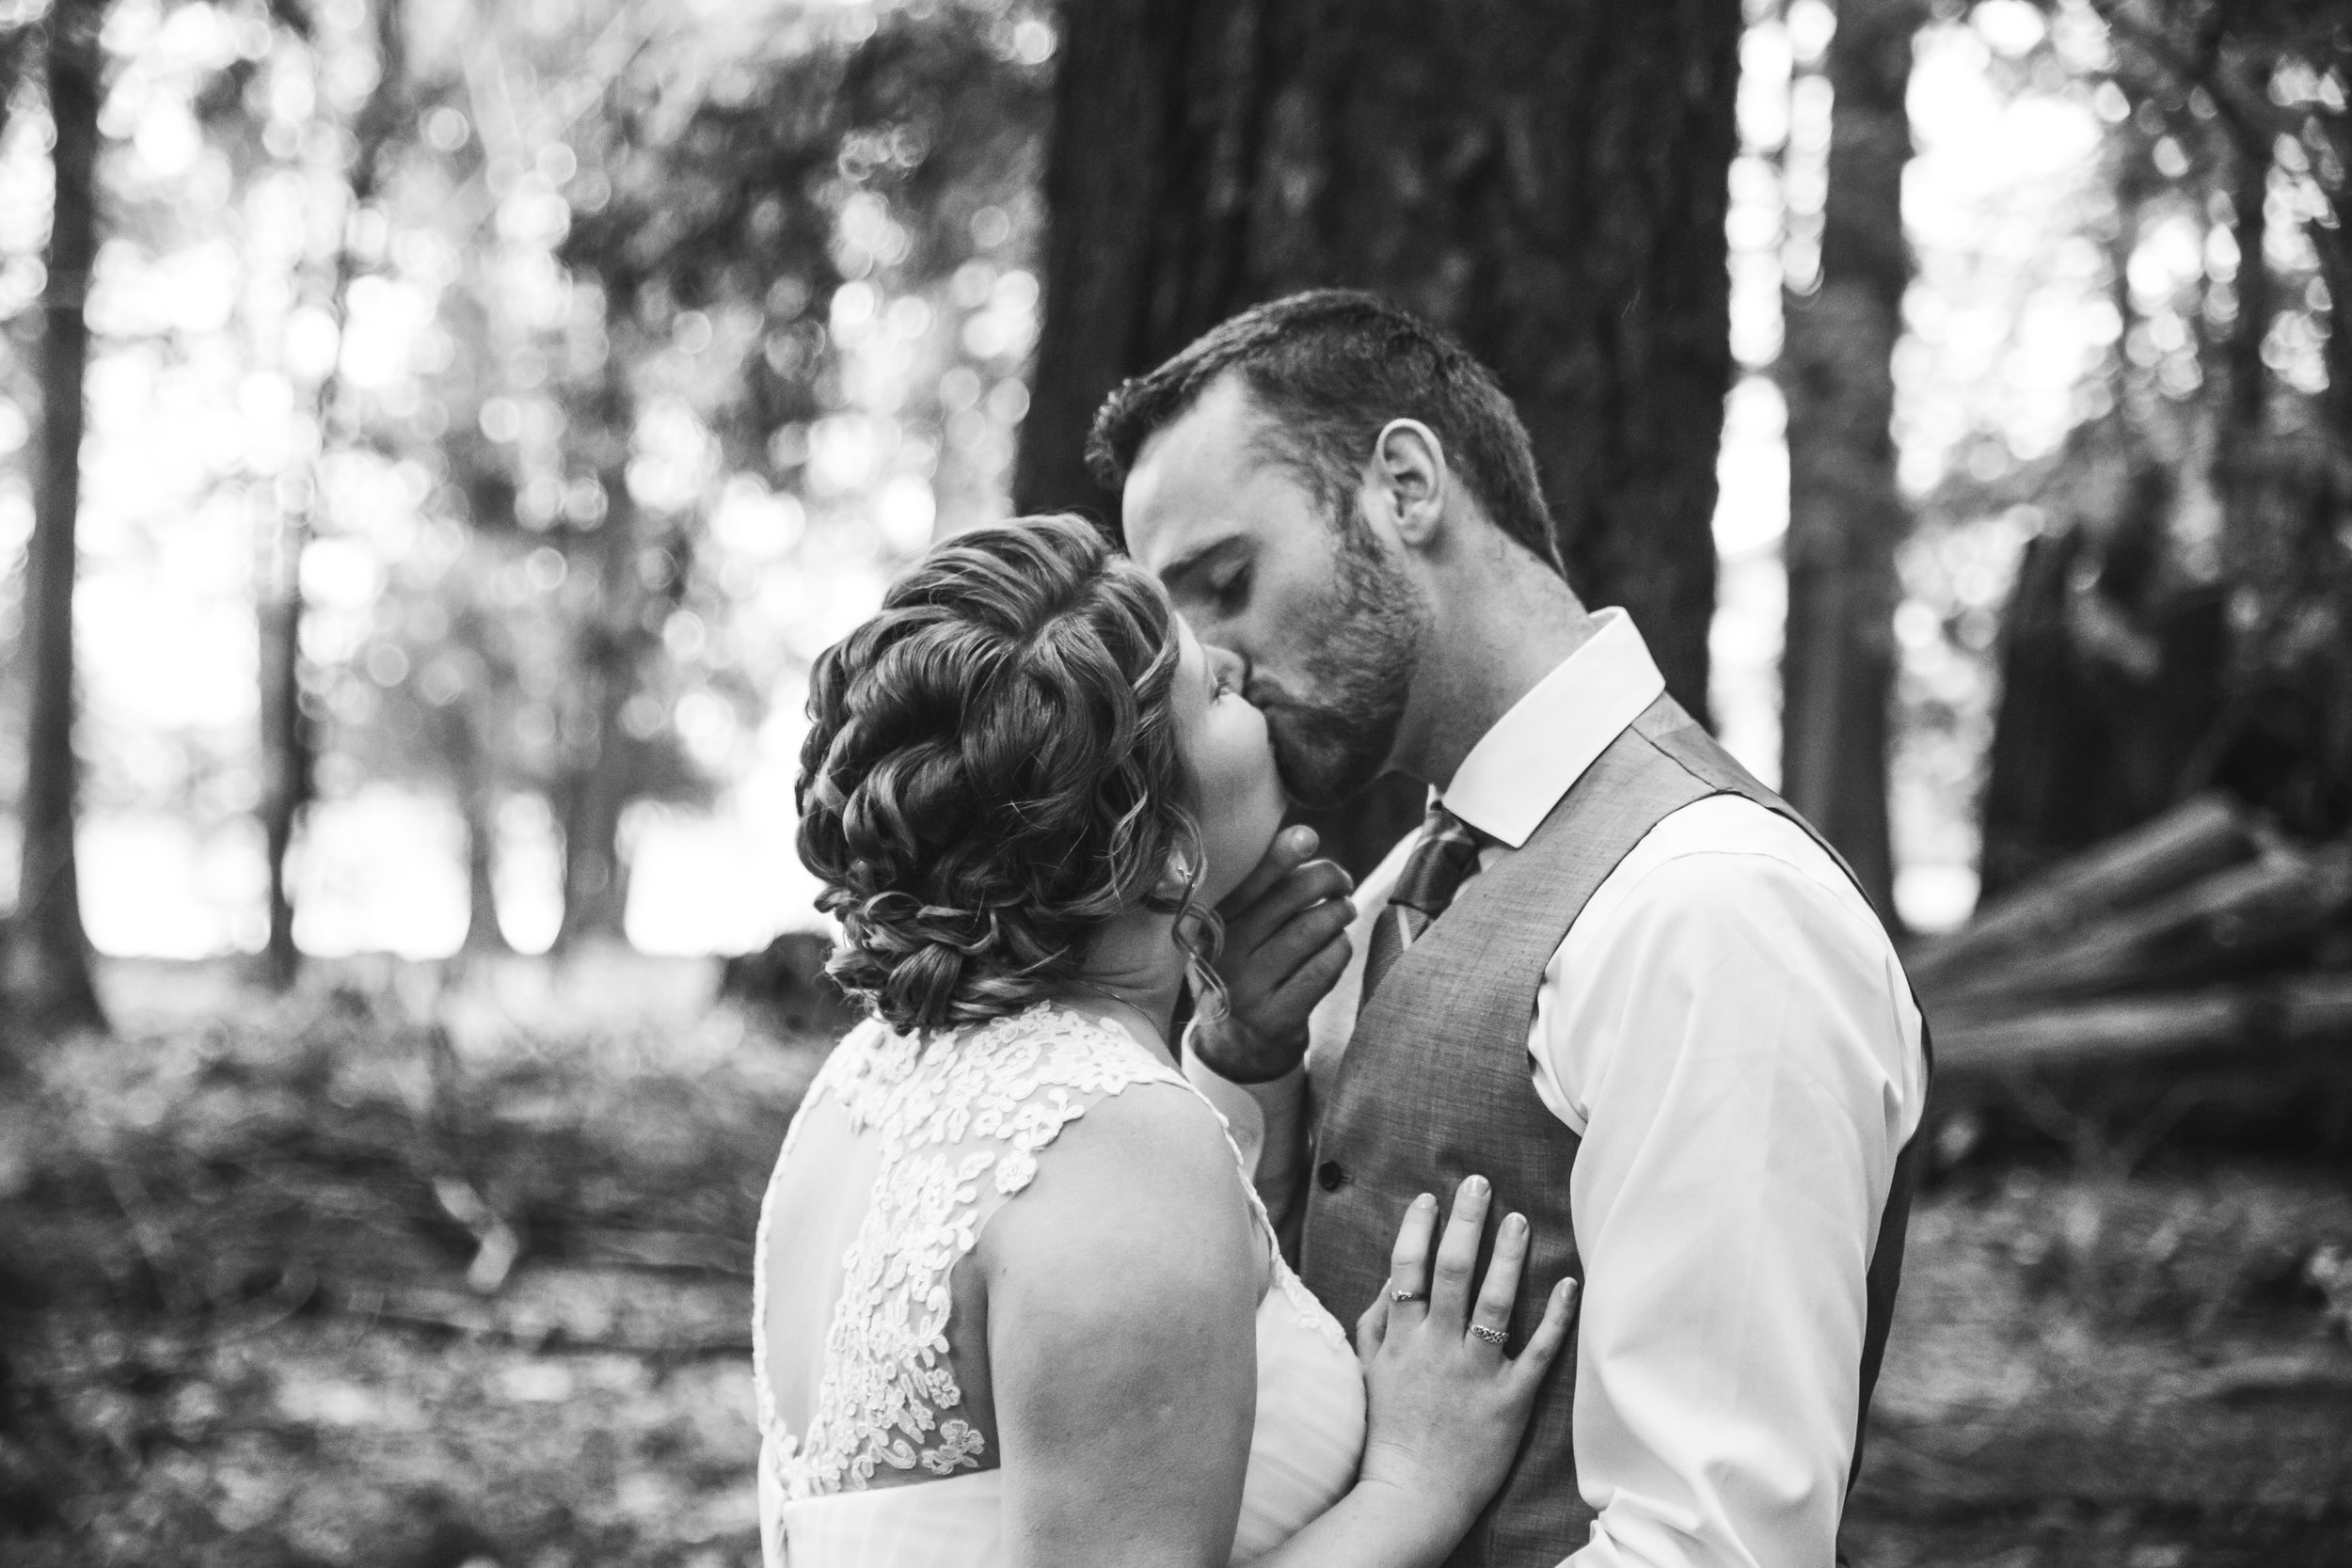 http://www.mimsicalphotography.com/blog/2017/3/29/ba-rainy-fairytale-forest-wedding-lynden-washington